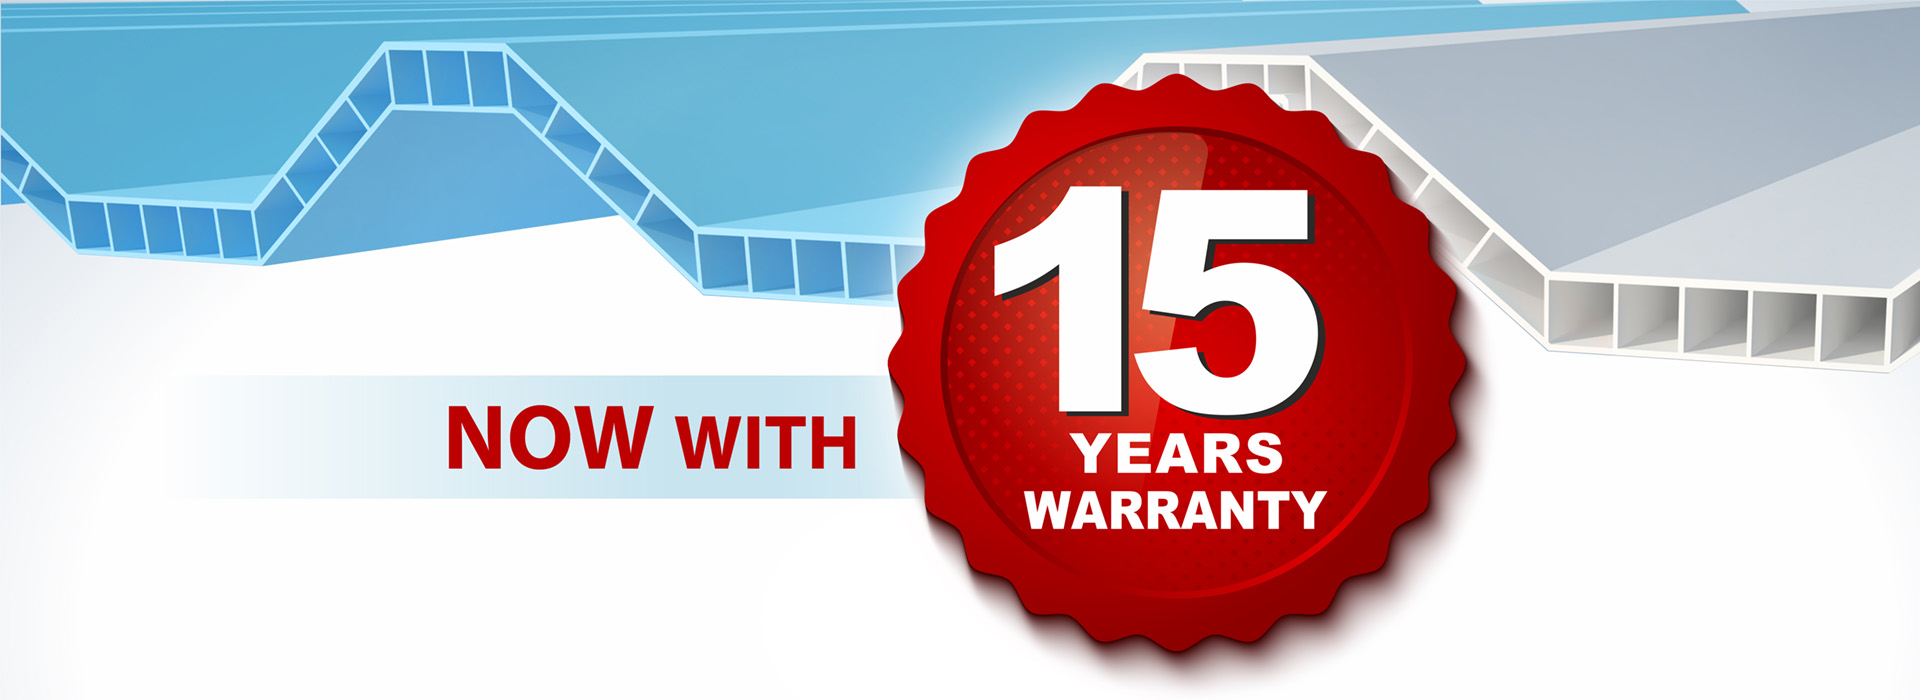 Atap Dingin ROOFTOP Now With 15 YEARS Warranty!